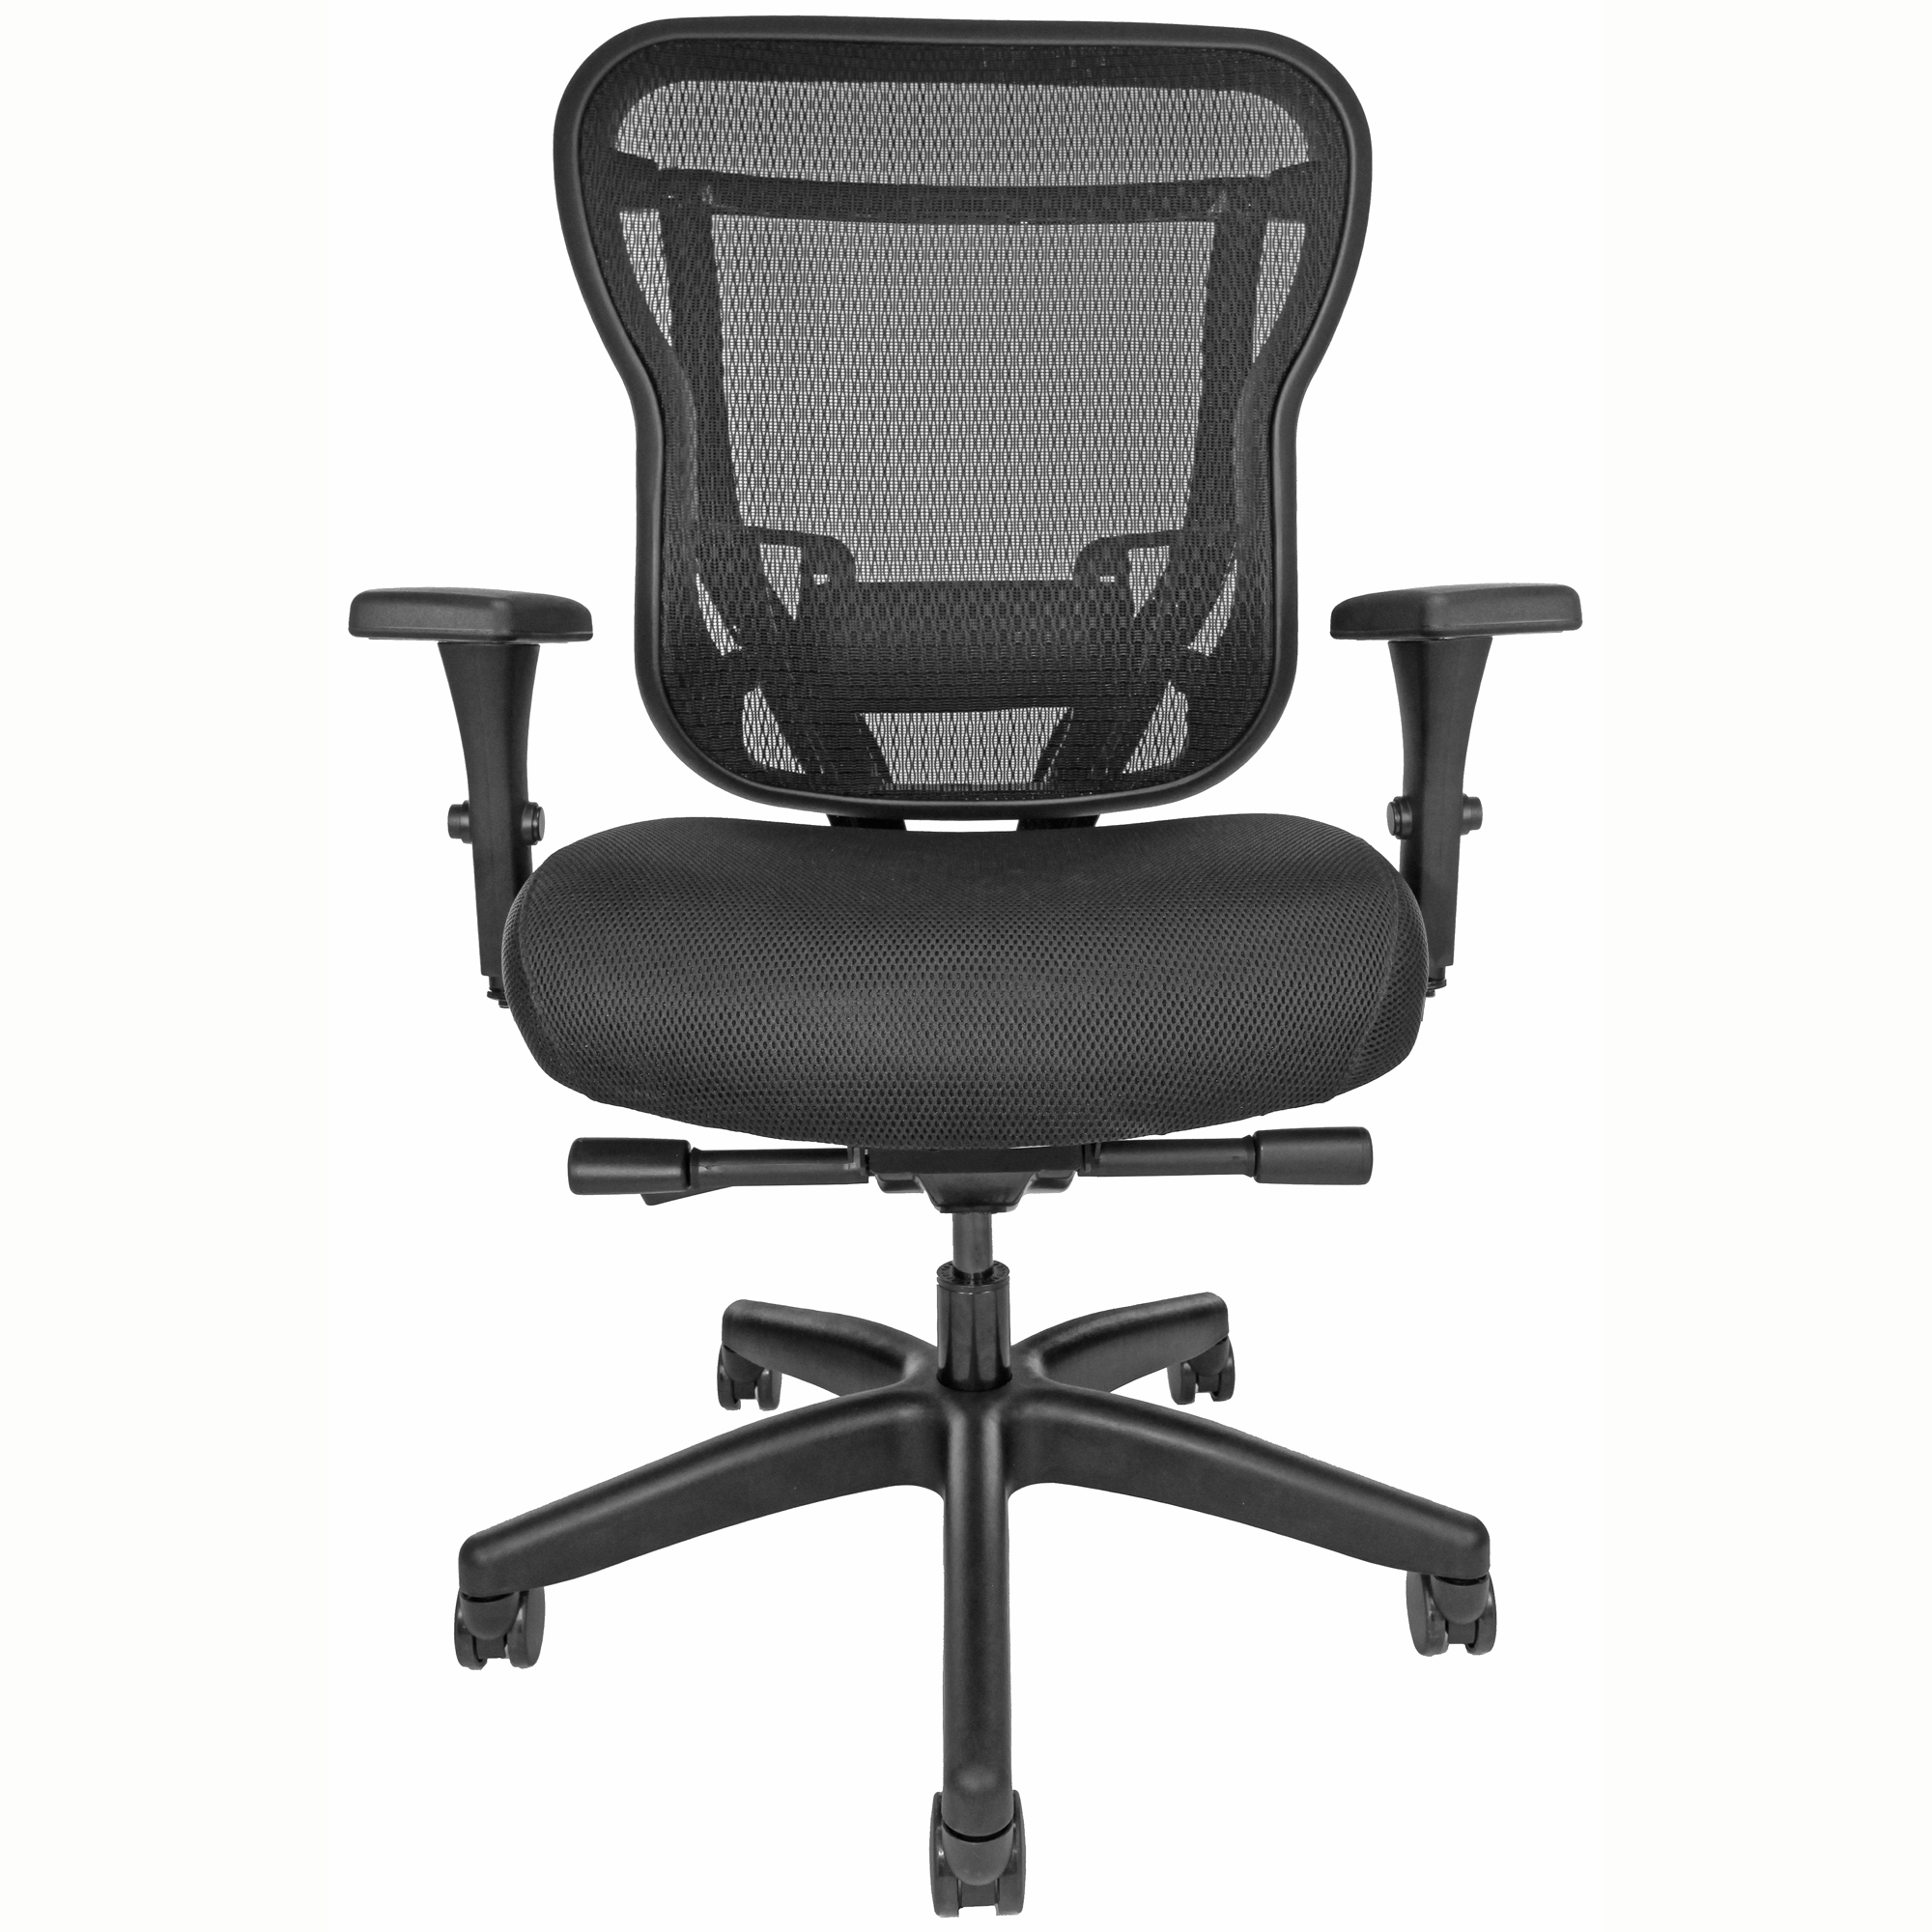 RKF Mesh-back office chair with upholstered seat